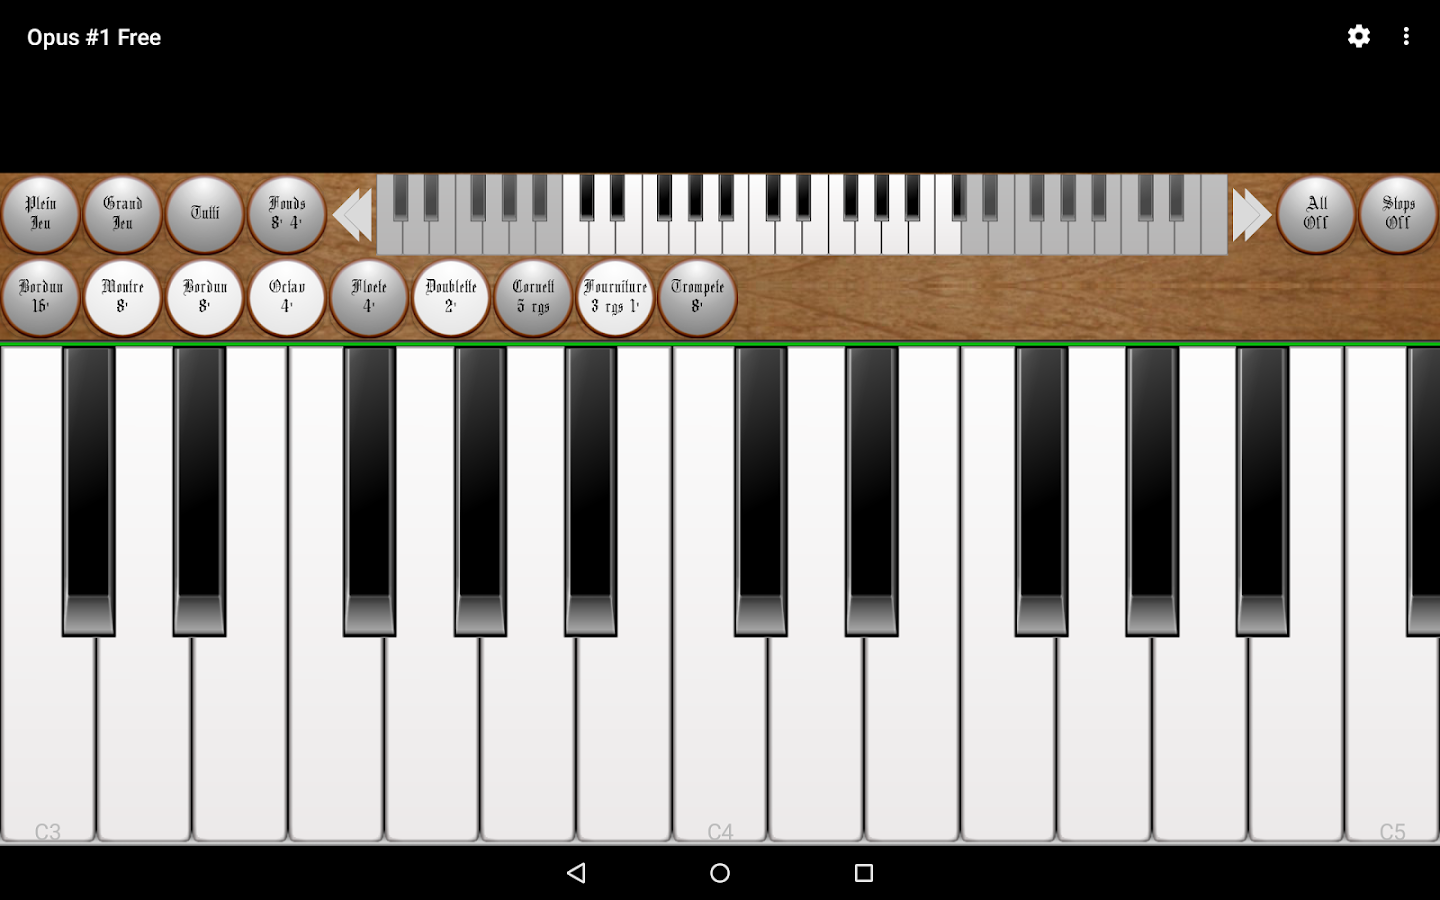 Opus #1 Free - The Pipe Organ- screenshot